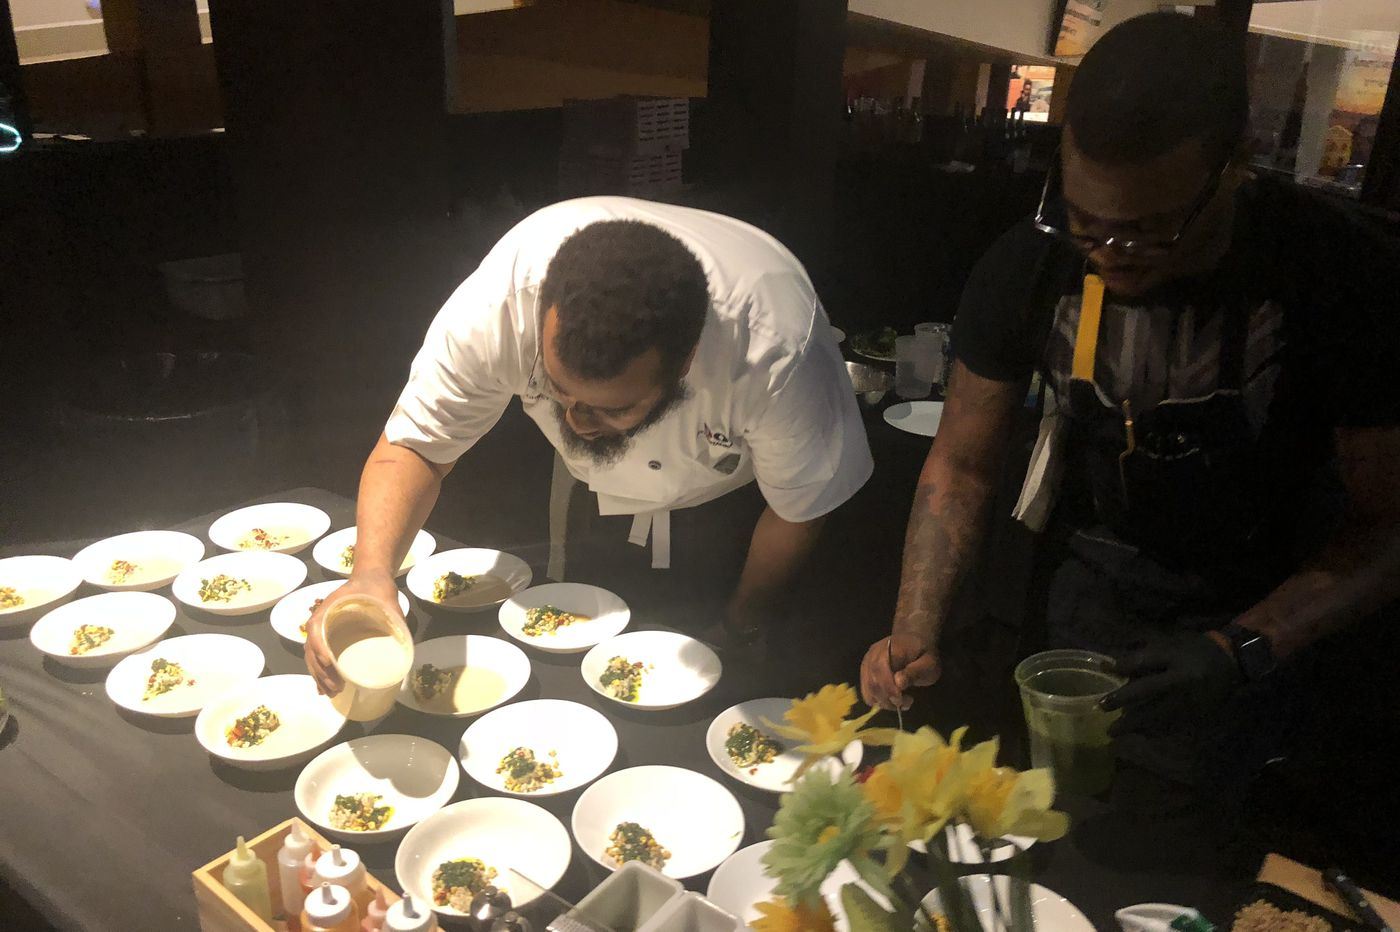 Cool pop-up alert: New dinner series features 13 African American chefs